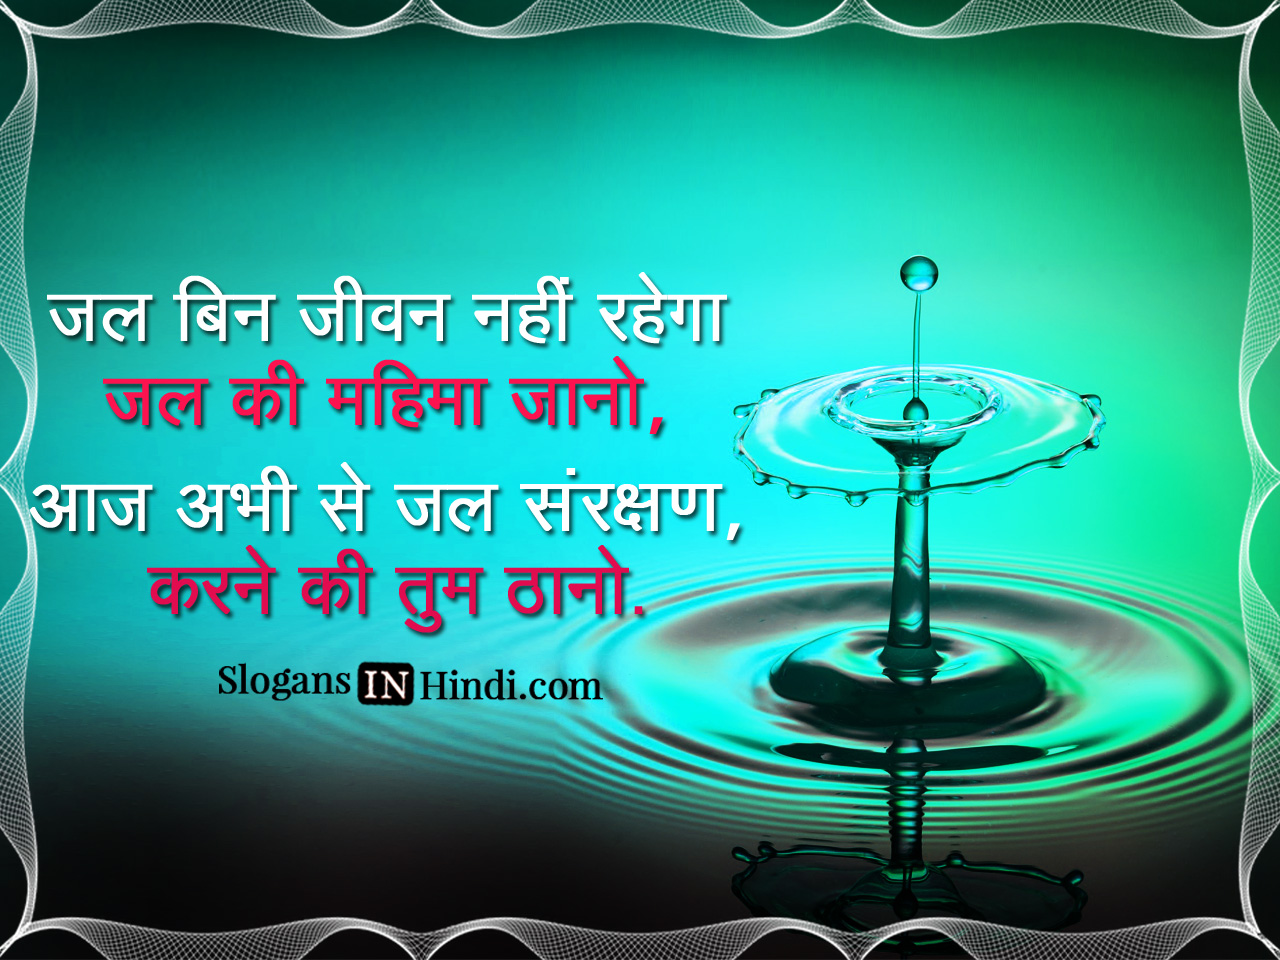 Save Water Slogans In Hindi - Page 3